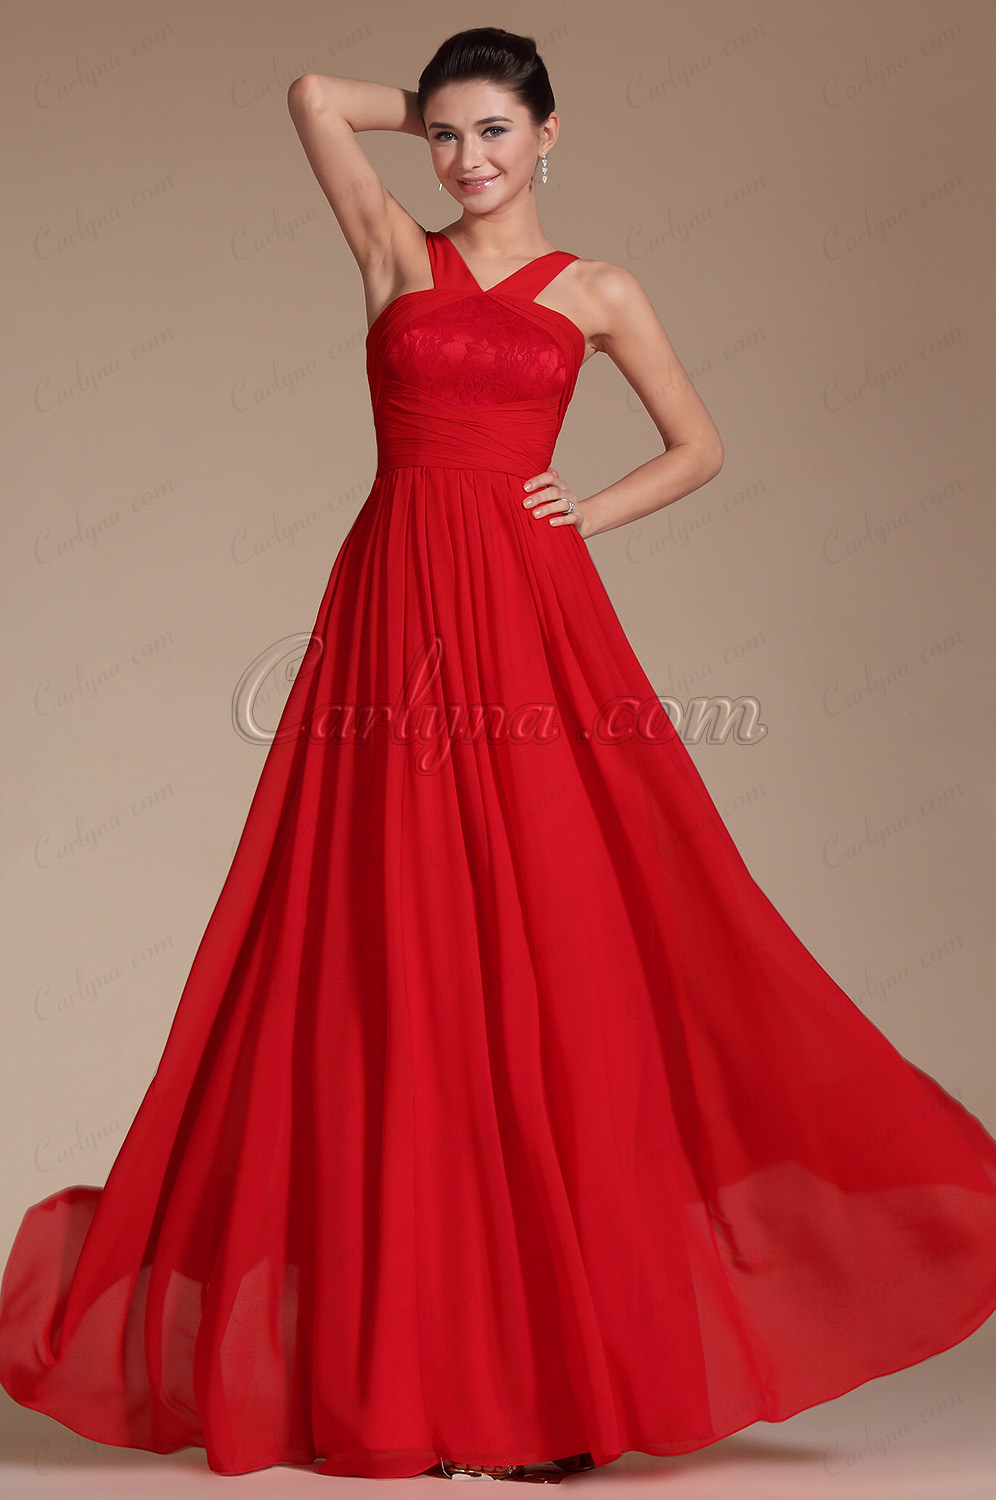 Red Straps A-line Evening Dress Bridesmaid Dress (C00144302)